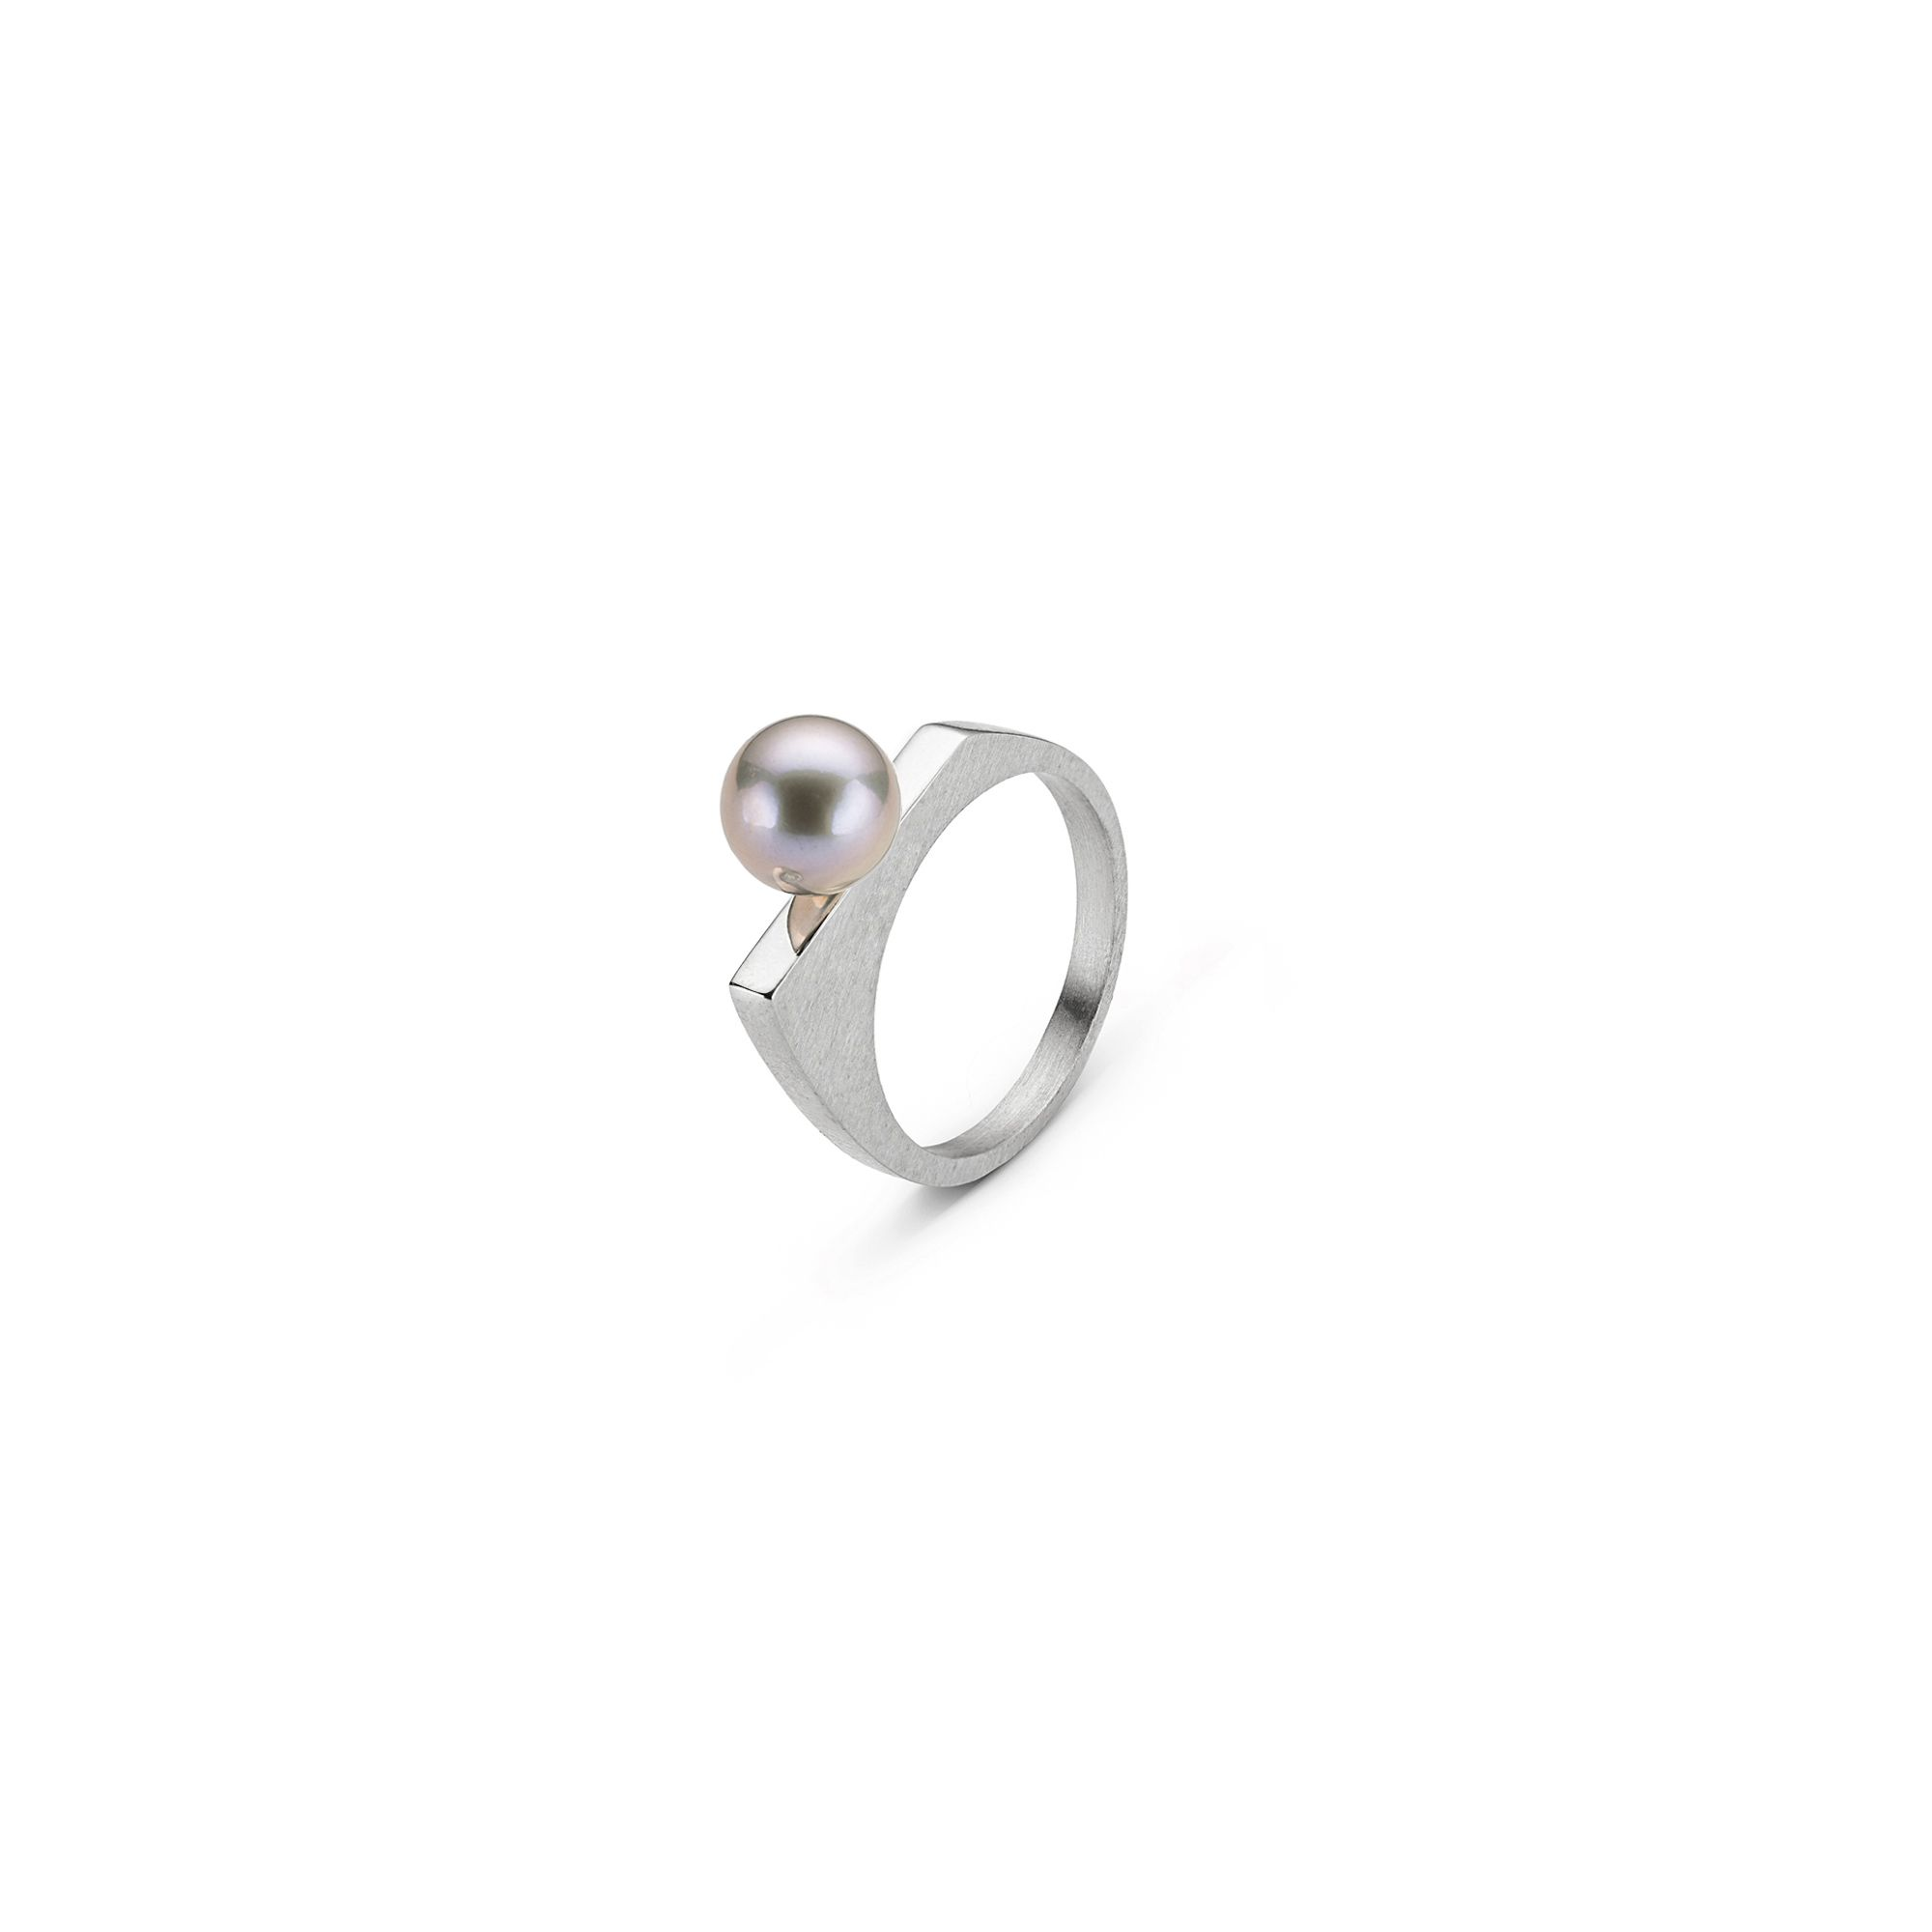 'Congiunzioni' silver ring with pearl Stackable silver ring with grey pearl